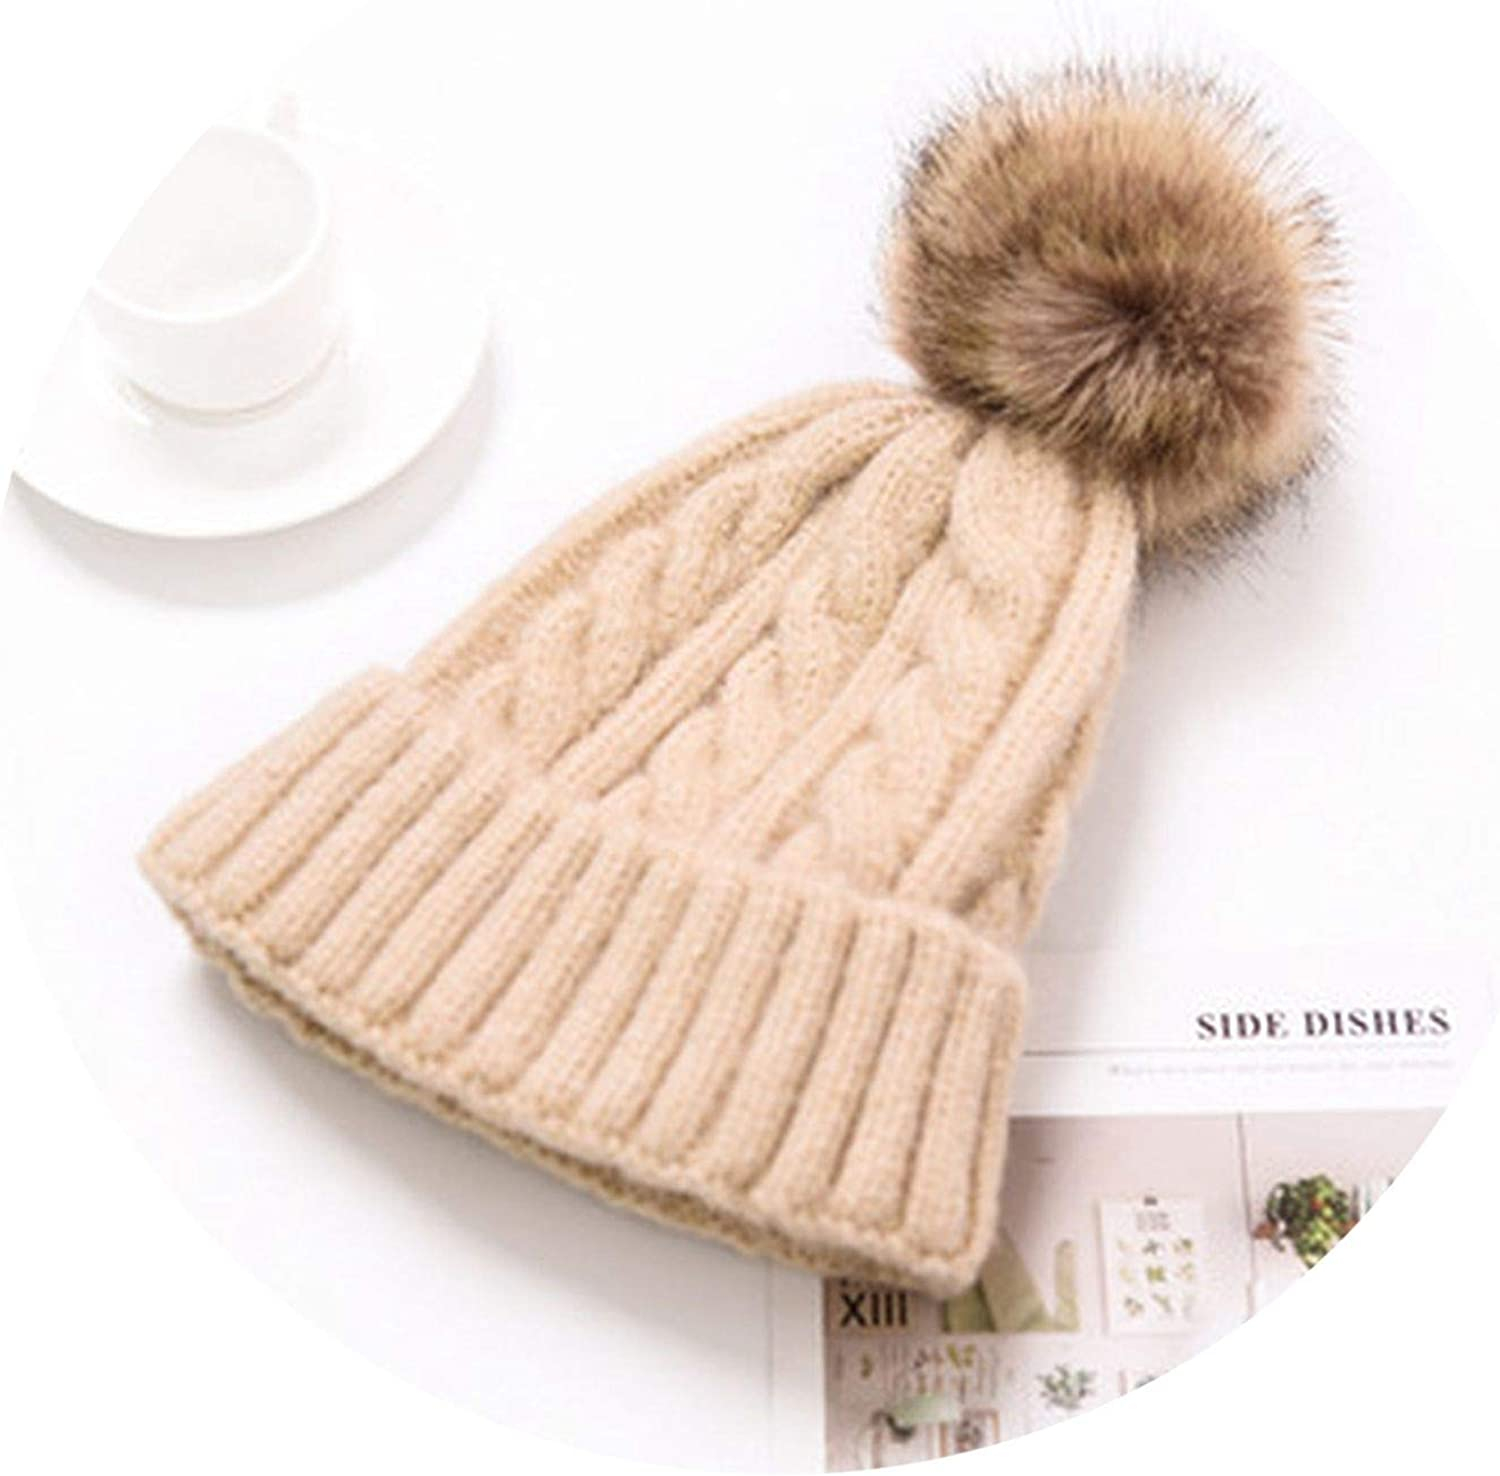 Youth-Song Knitted Hat Caps ren Girl Boy Wool Bobble Pompom Beanies Hats,Light Gray Size 48-53cm